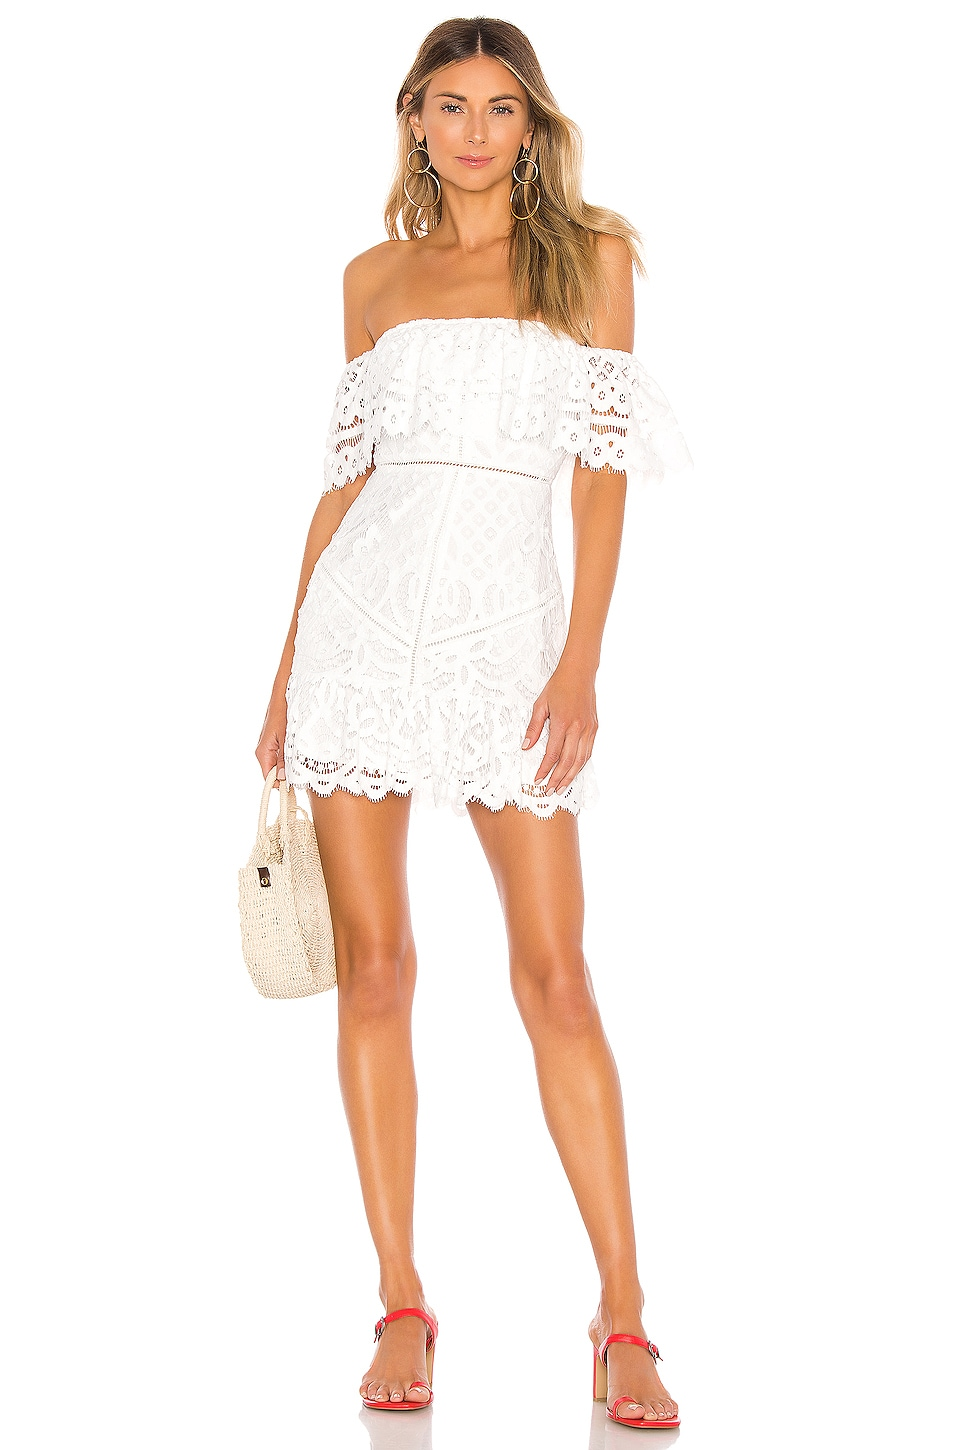 cf2a572c0 Lovers + Friends MINIVESTIDO HOMBRO DESCUBIERTO VINNIE en White ...